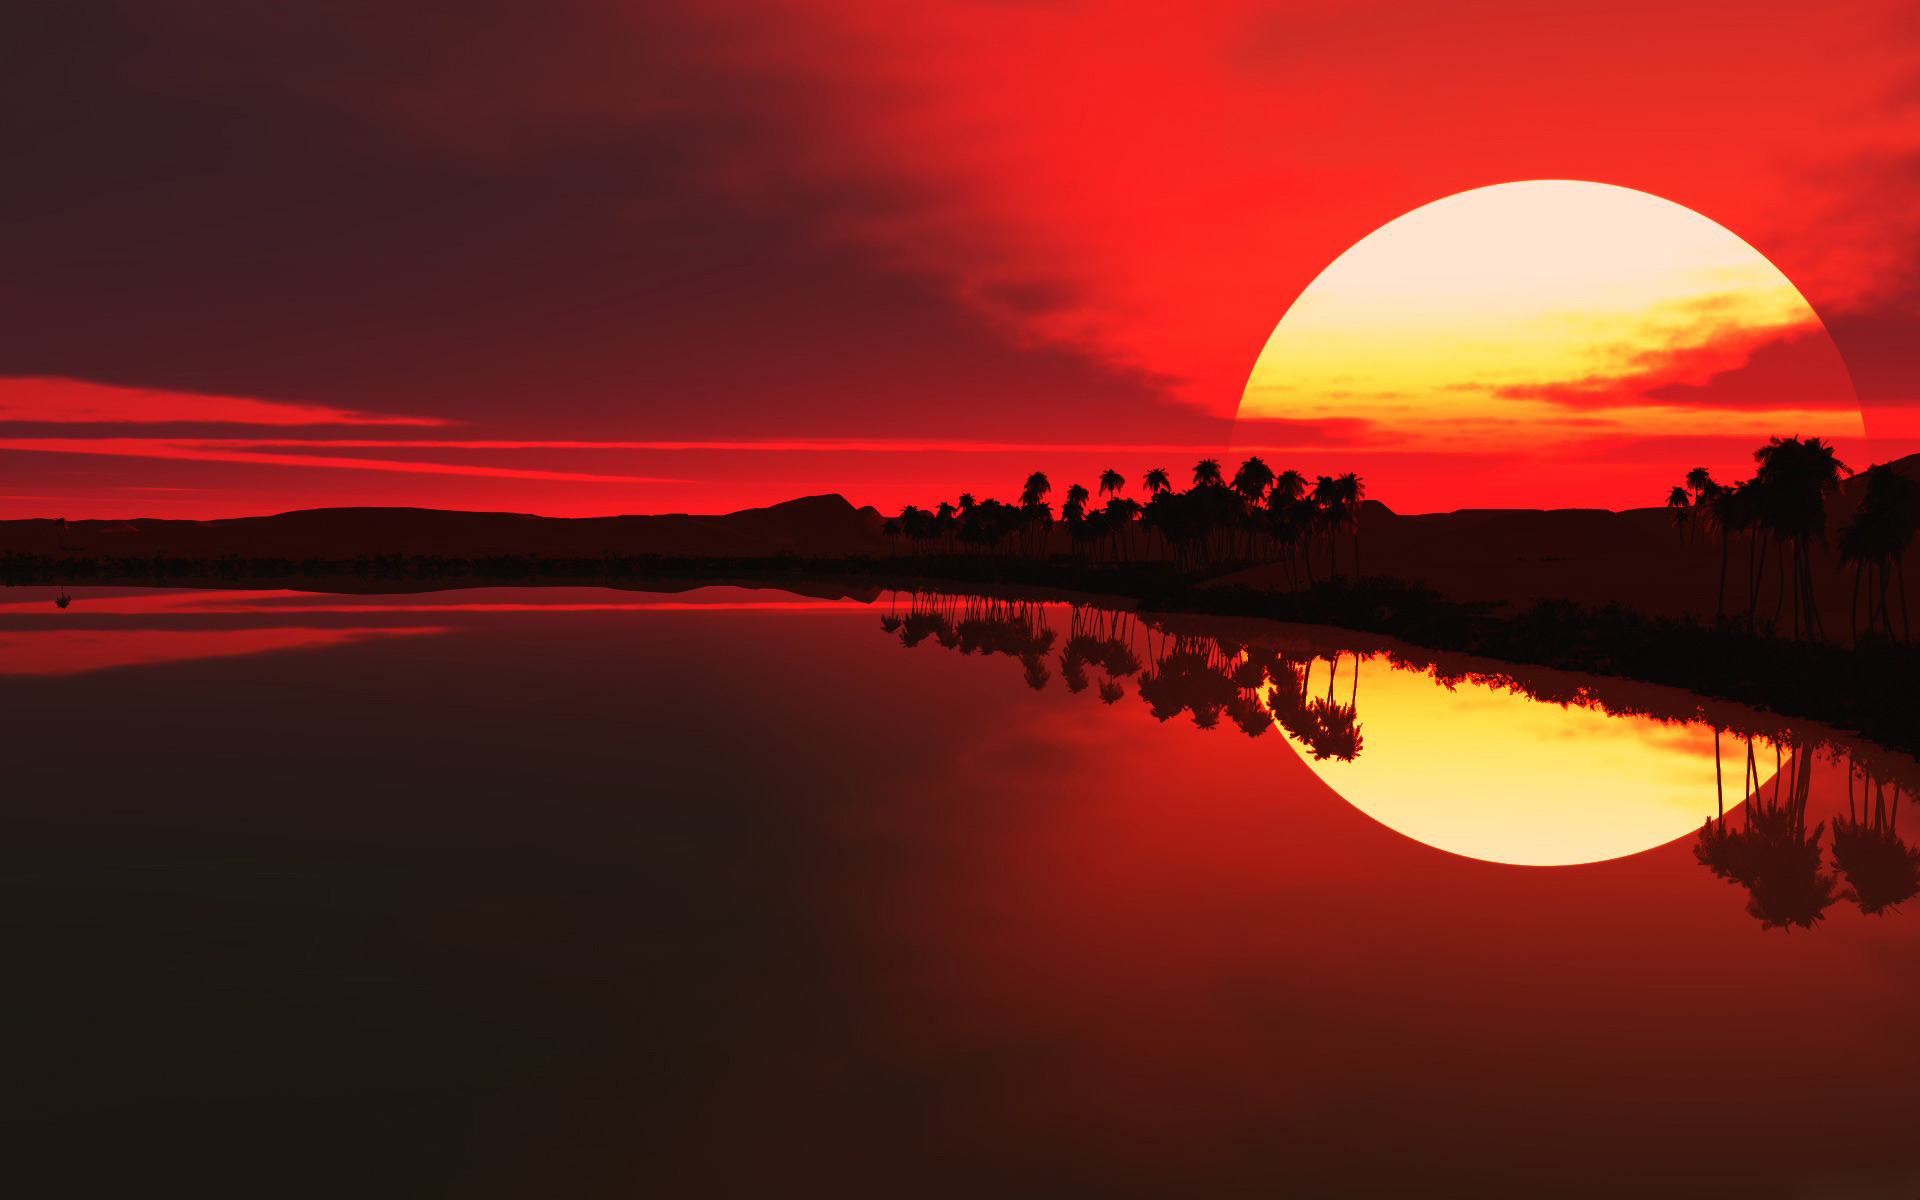 African Sunset Wallpaper High Quality Wallpapers 1920x1200